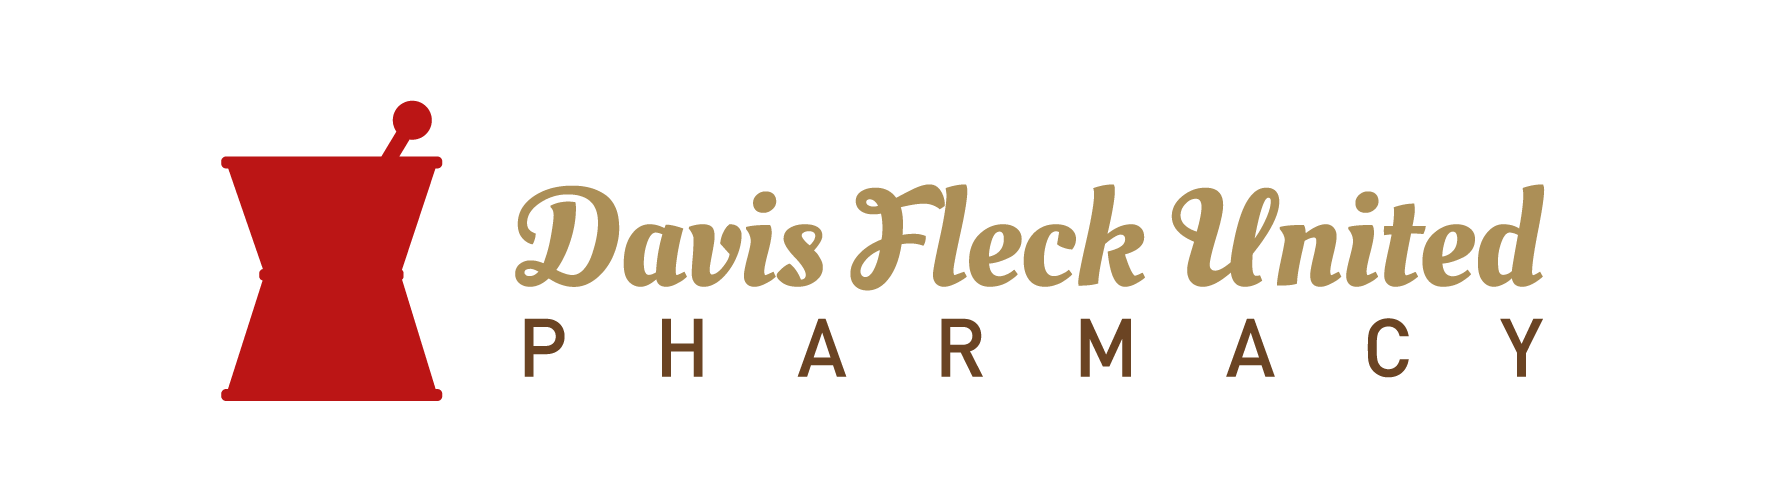 Davis Fleck United Pharmacy